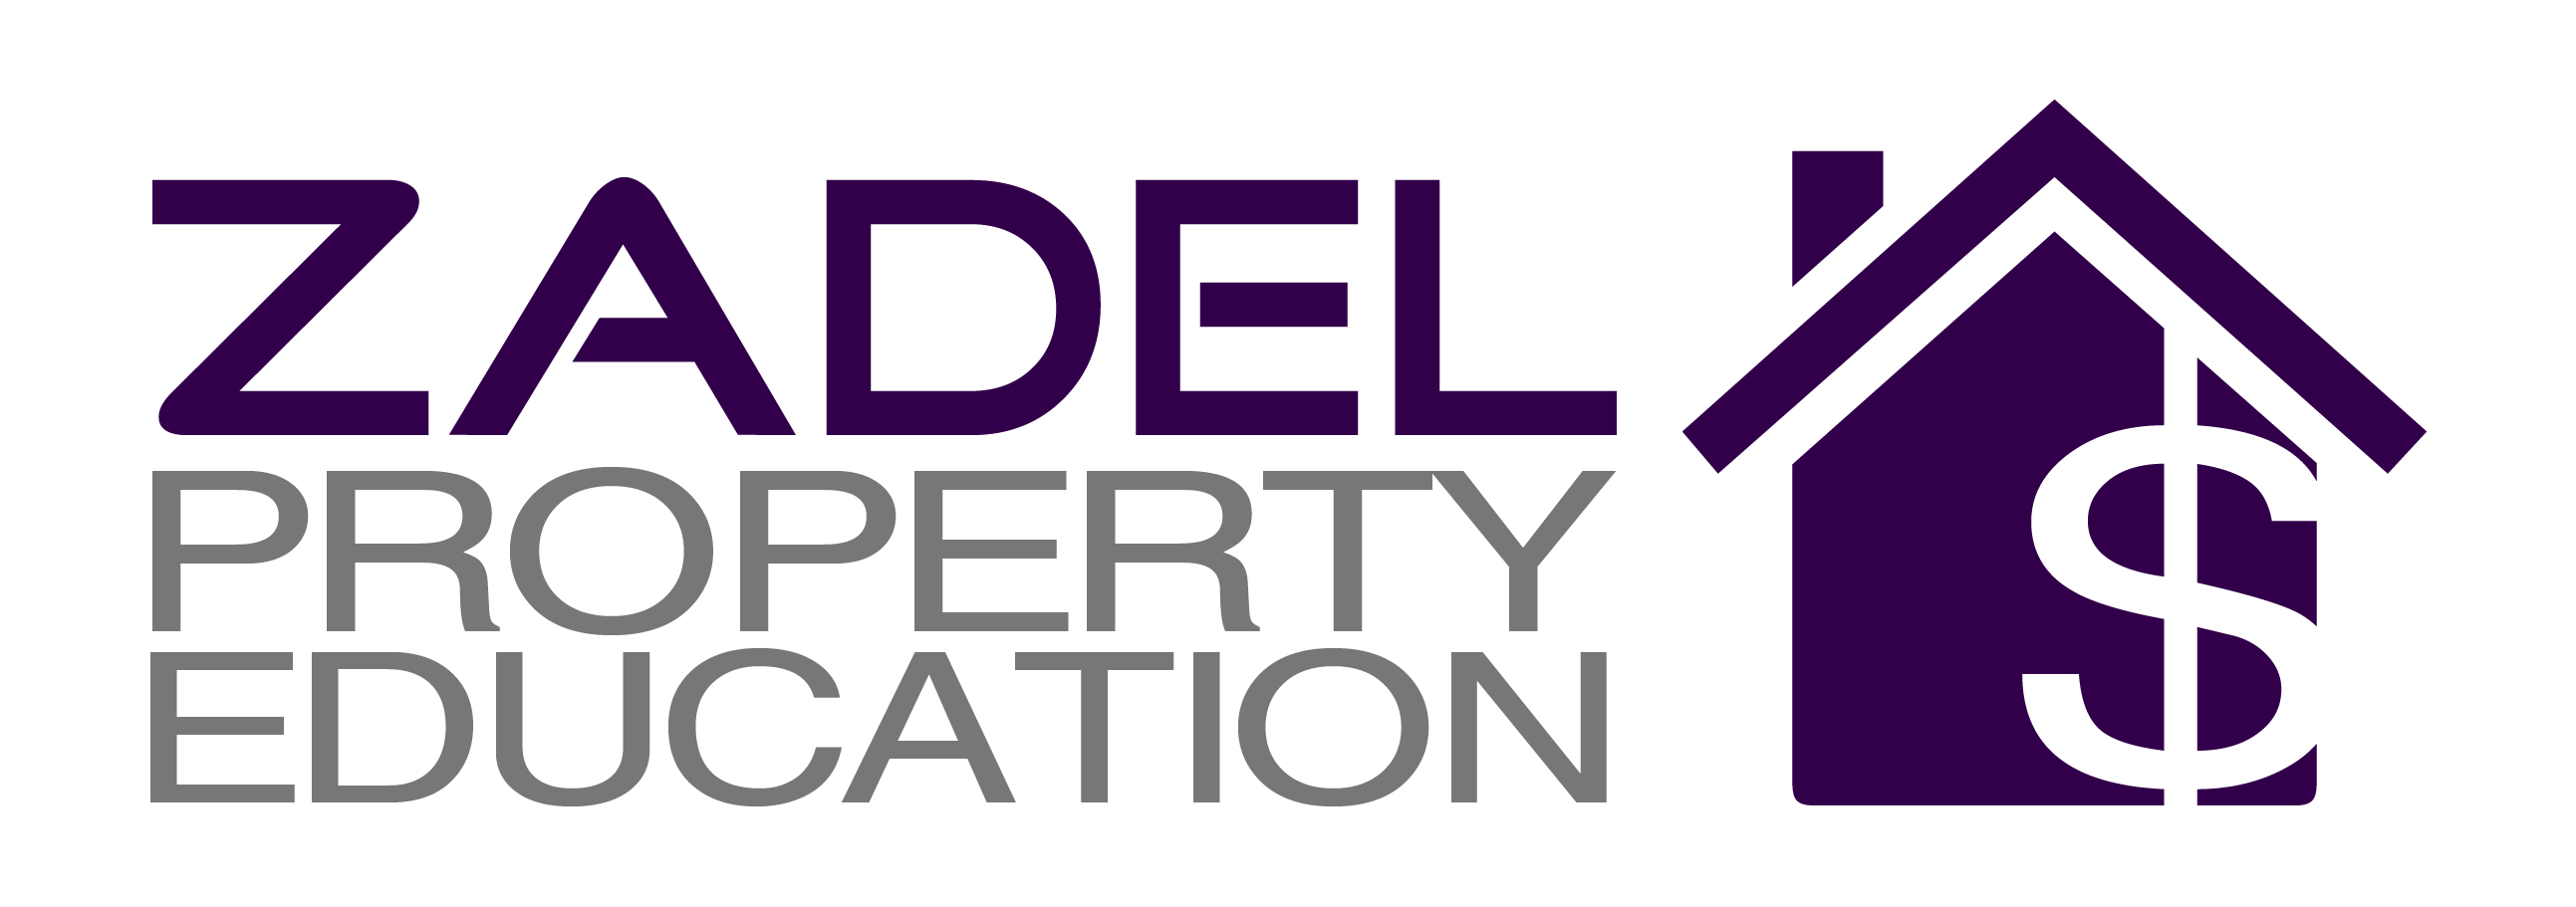 zadel property education